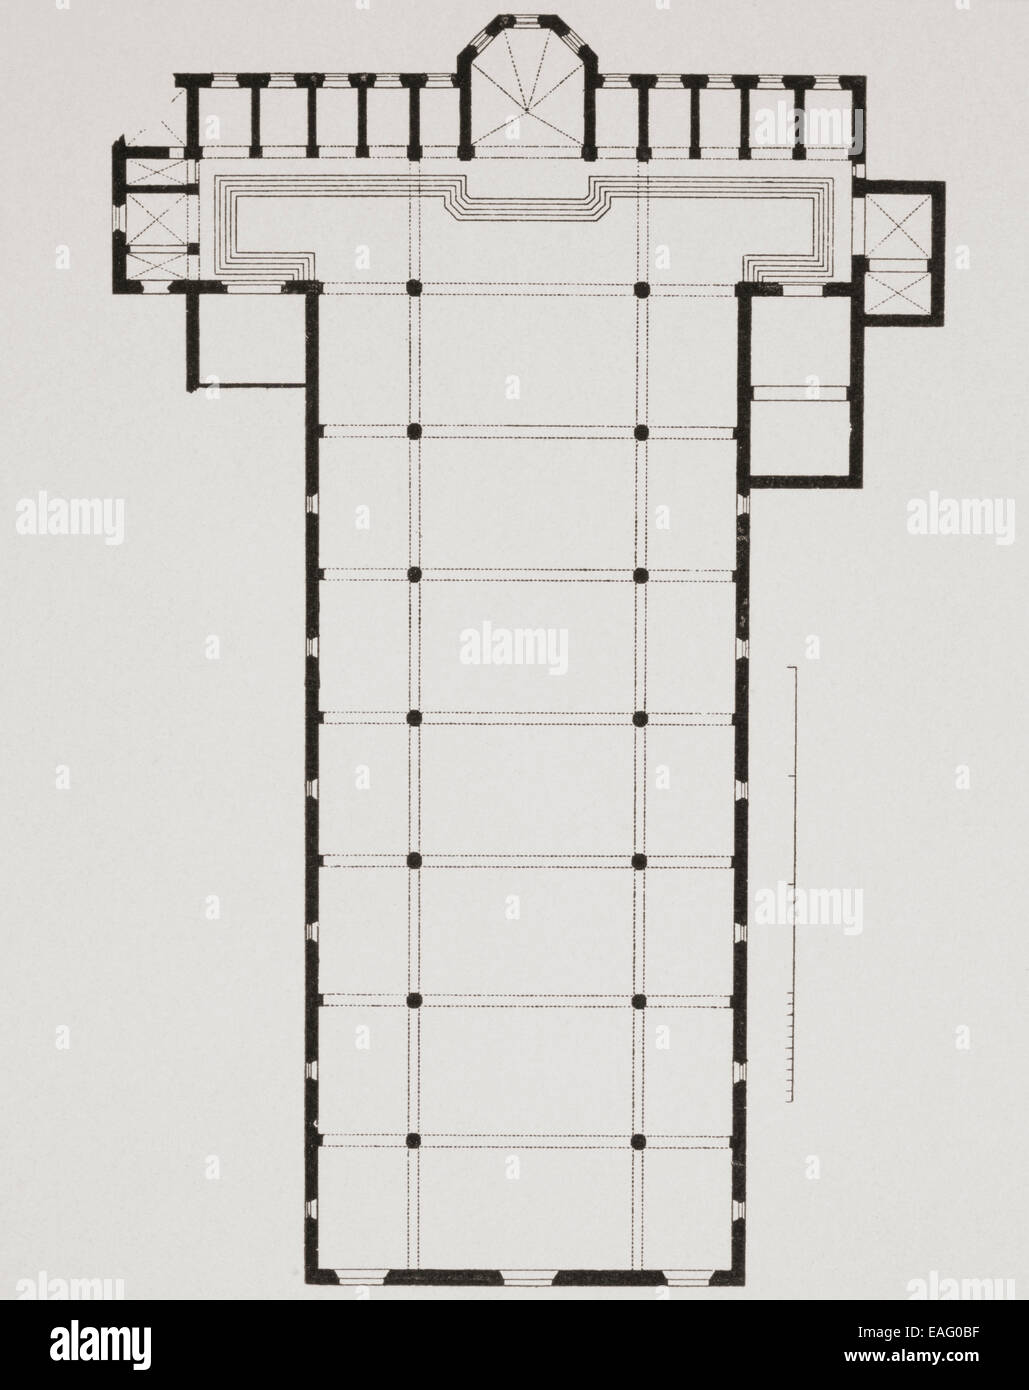 hight resolution of ground plan of the basilica di santa croce basilica of the holy cross florence italy